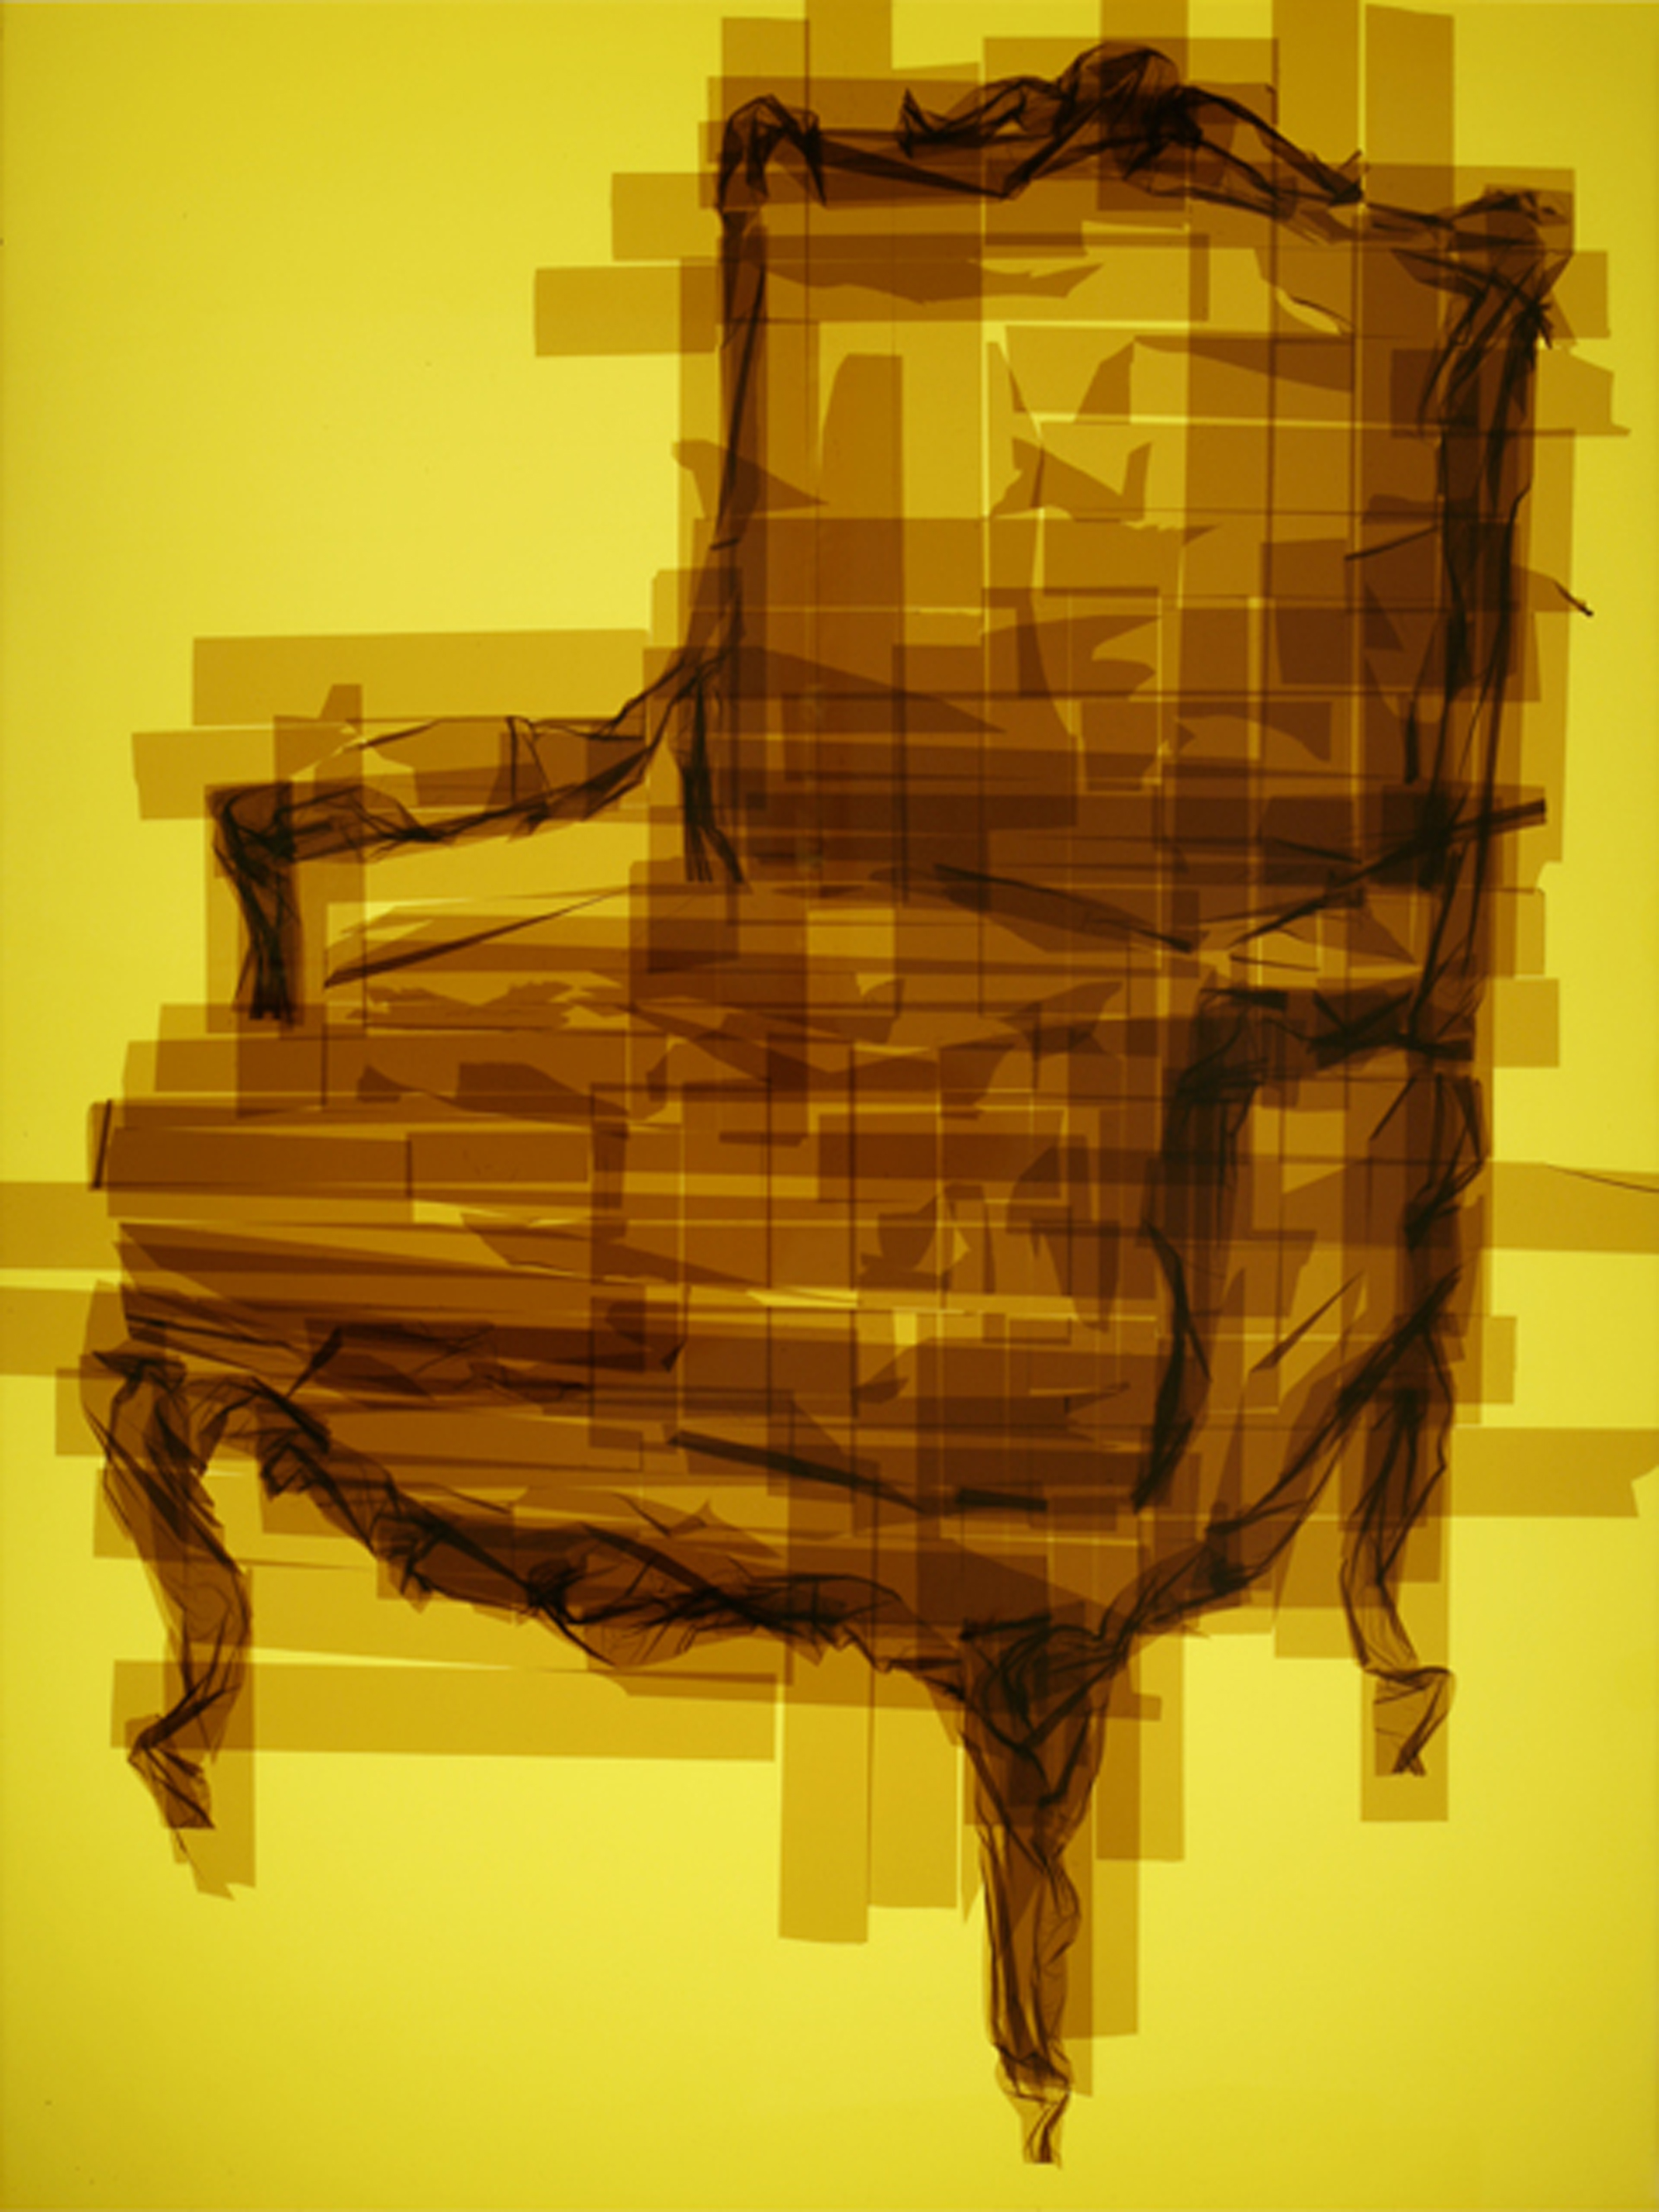 Chair 15, 49 x 37 x 4.5 inches / 124.5 x 94 x 11.5 cm, packaging tape on acrylic panels with LED light box, 2015